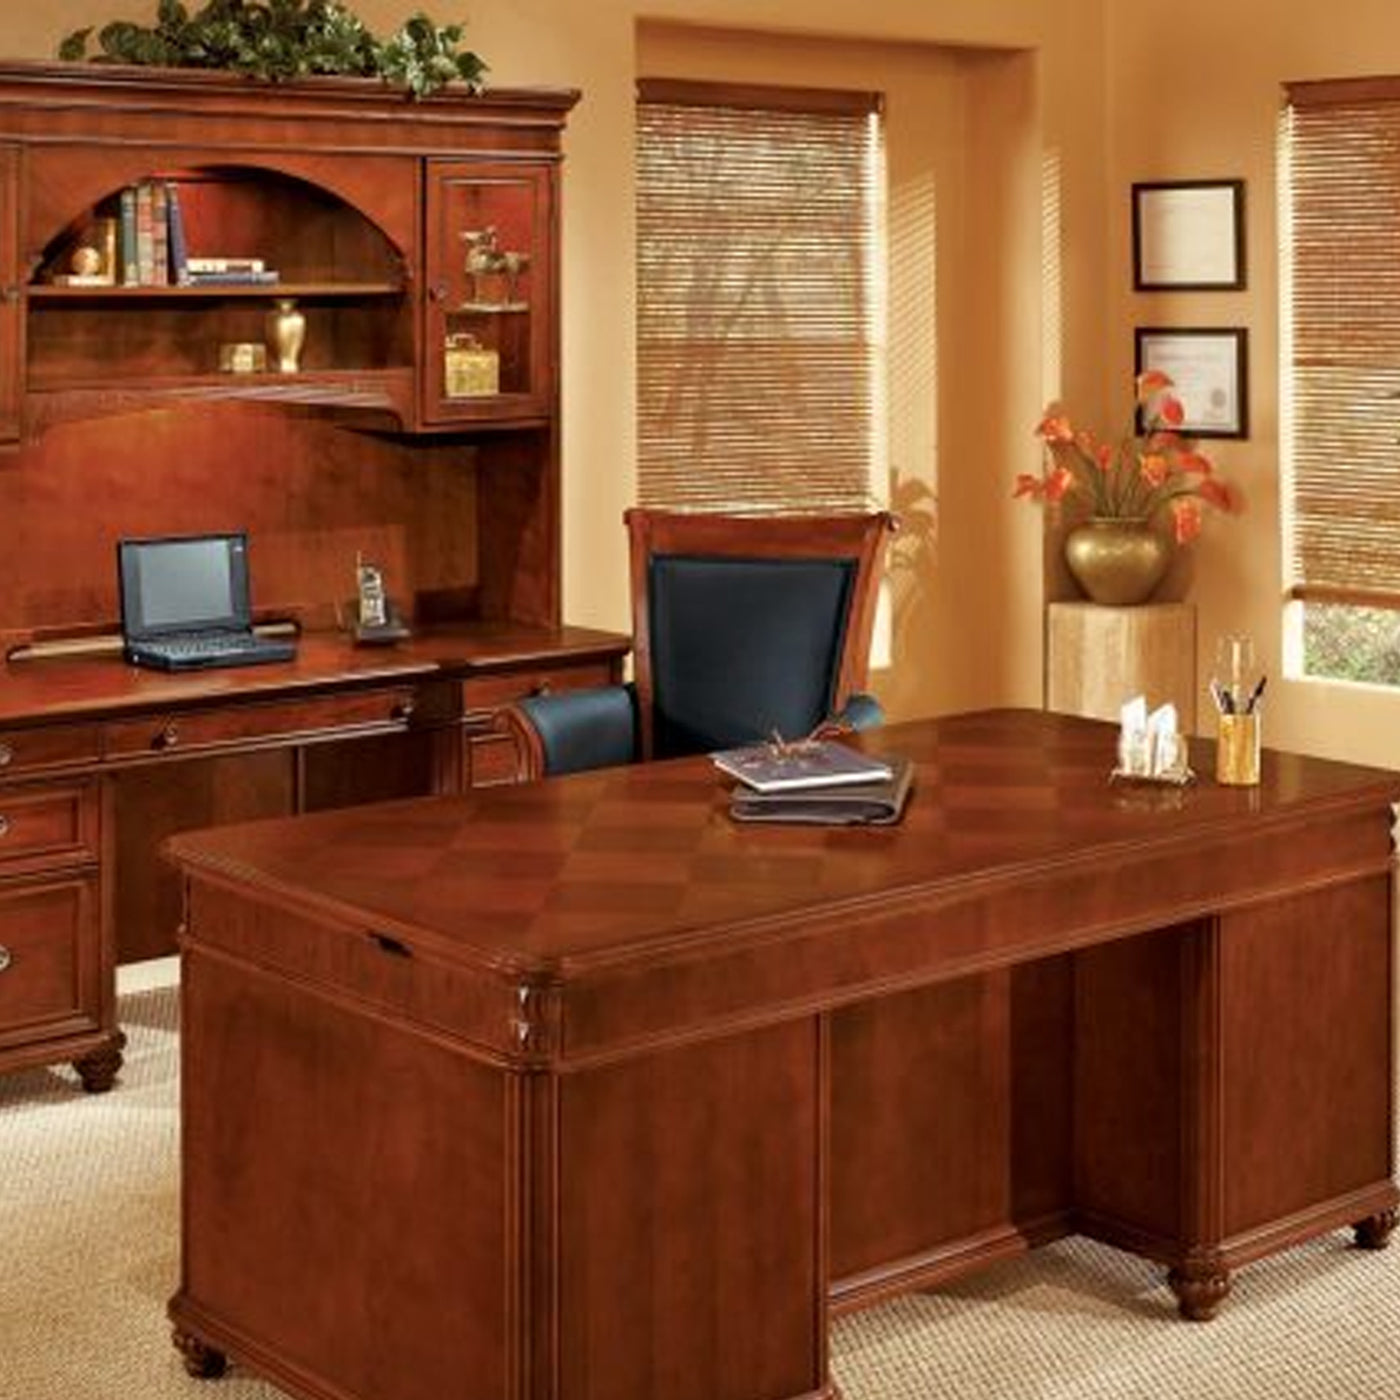 DMI Office Furniture Works Antigua Series | quality wooden office furniture, desk and hutch set, office desk and credenza set